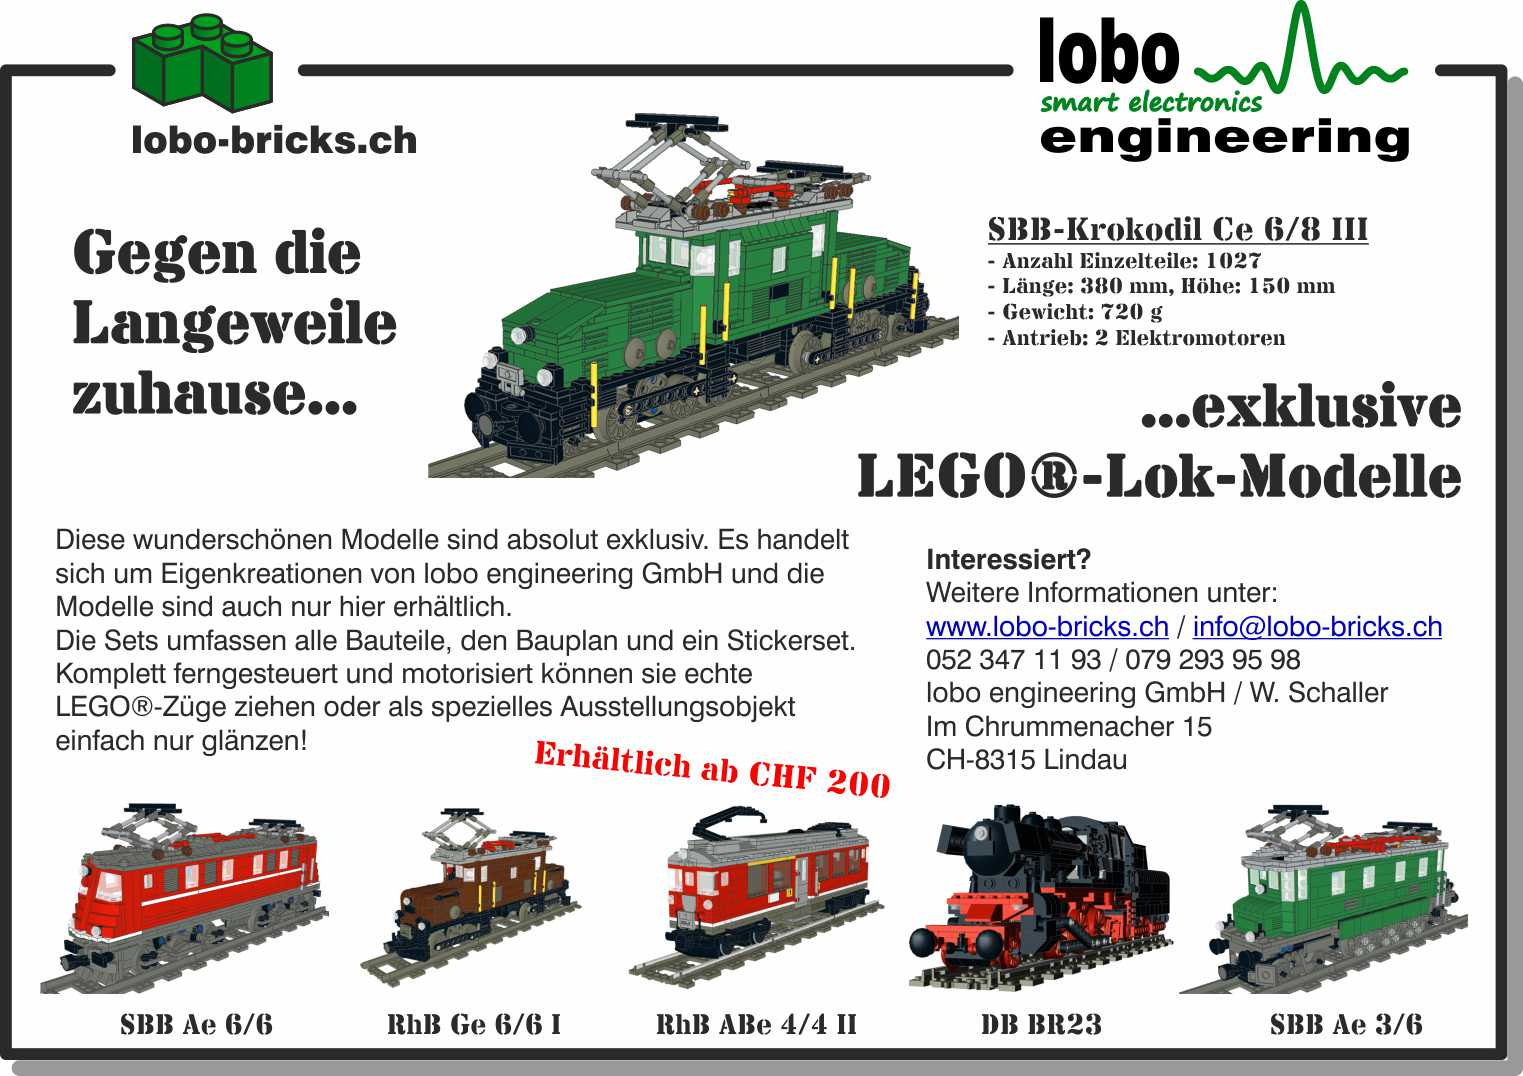 202005 Inserat lobo engineeringjpg